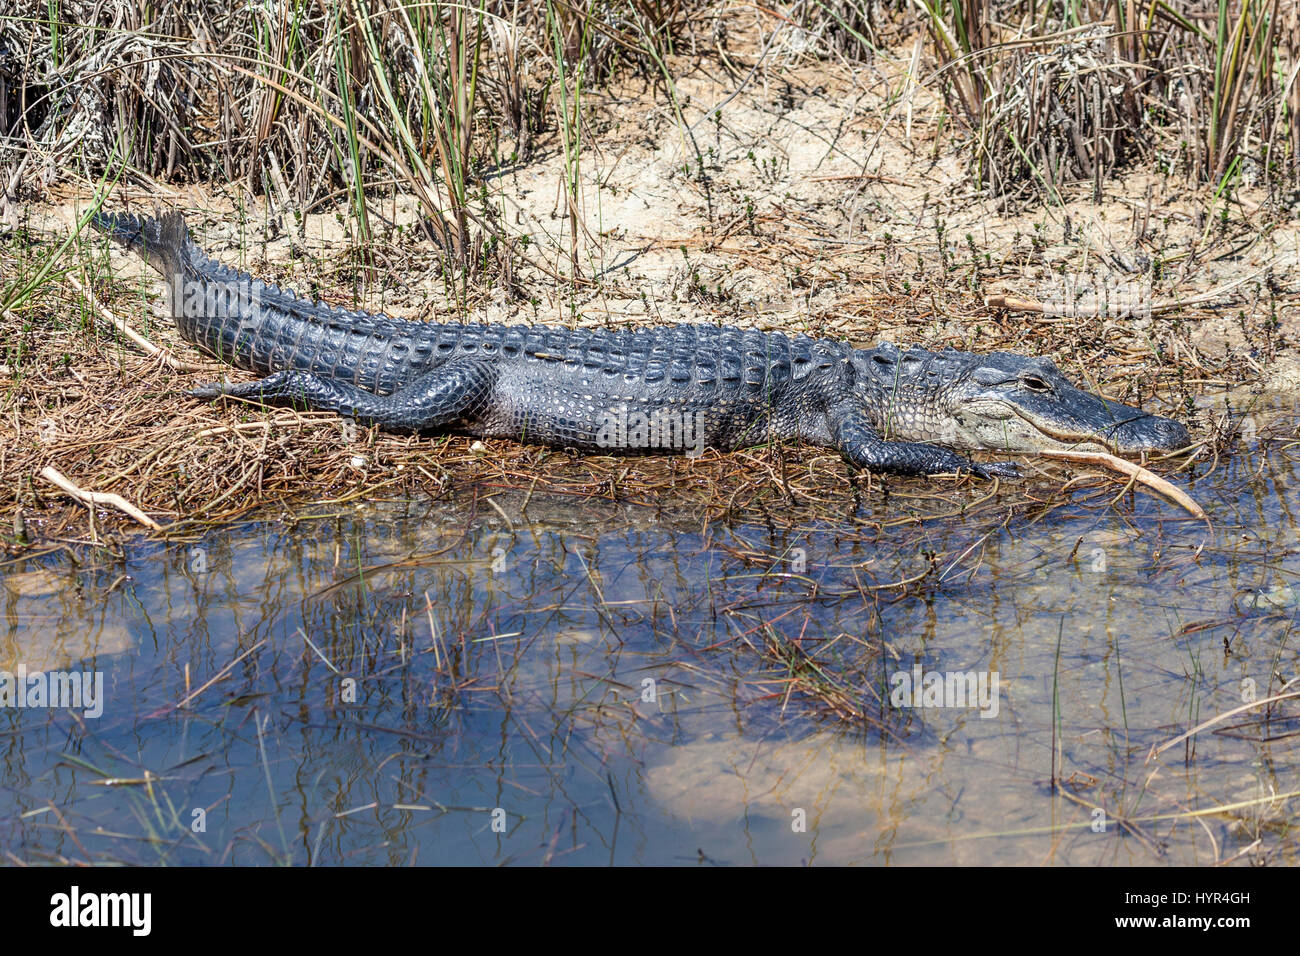 Big american alligator in the Everglades National Park. Florida, United States - Stock Image